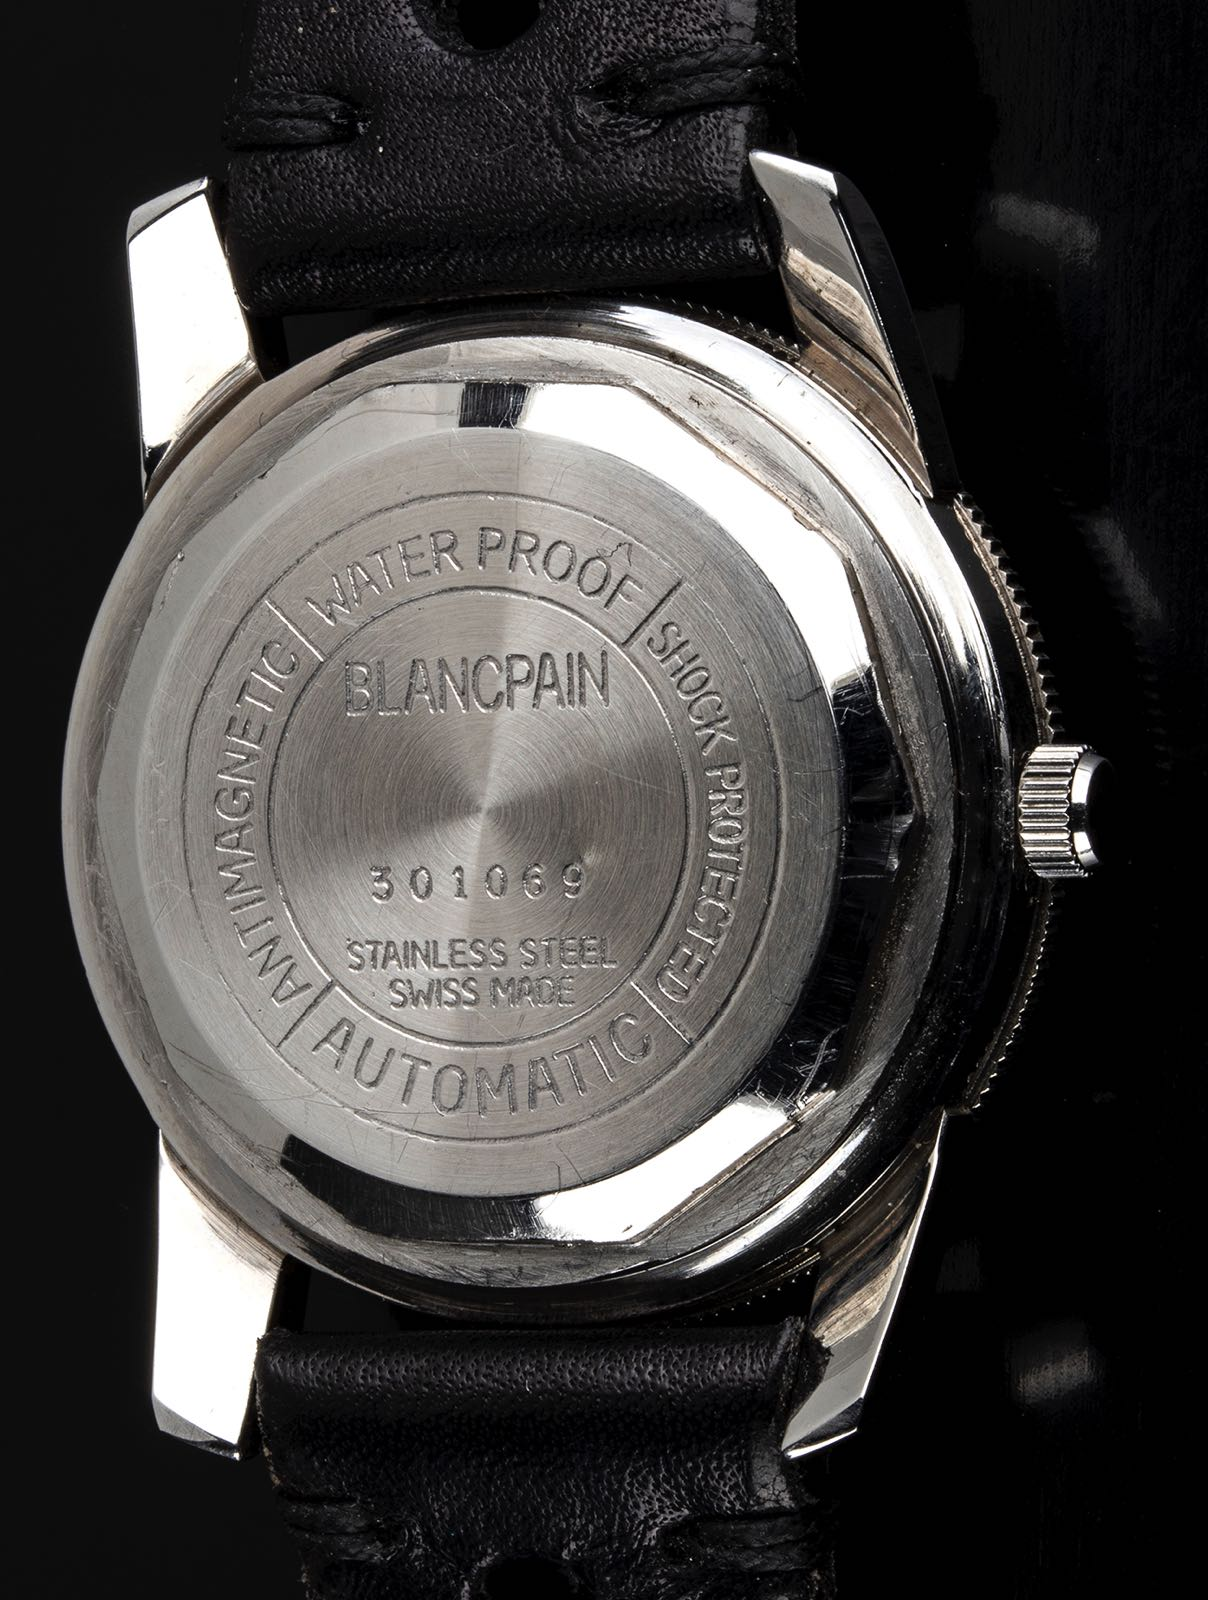 Blancpain Fifty Phatoms Aqua lung no radiations dial - Image 4 of 4